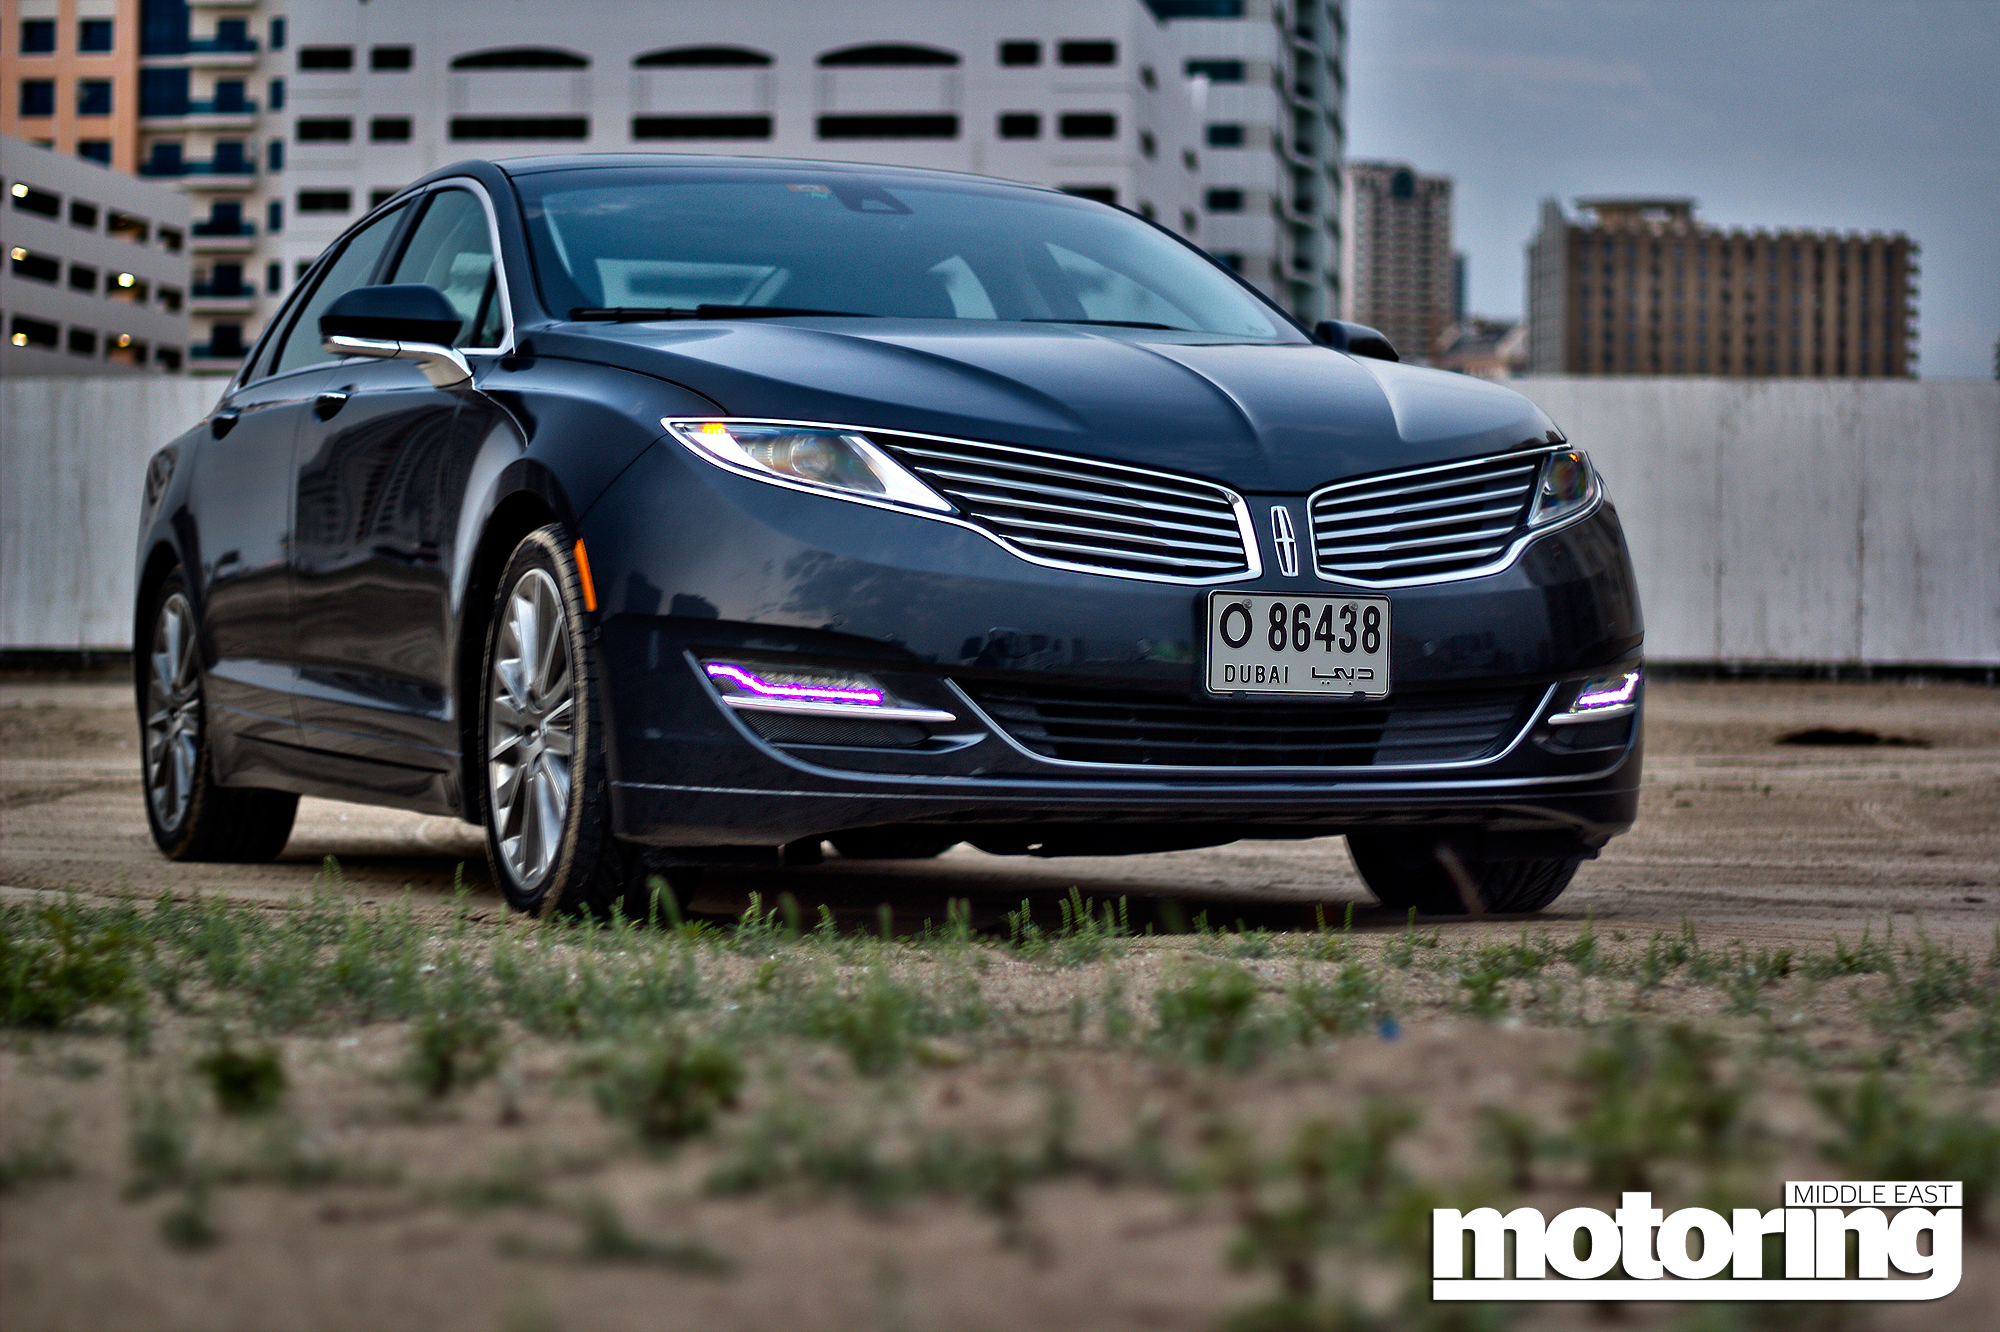 2014 lincoln mkz review motoring middle east car news reviews and buying guidesmotoring. Black Bedroom Furniture Sets. Home Design Ideas